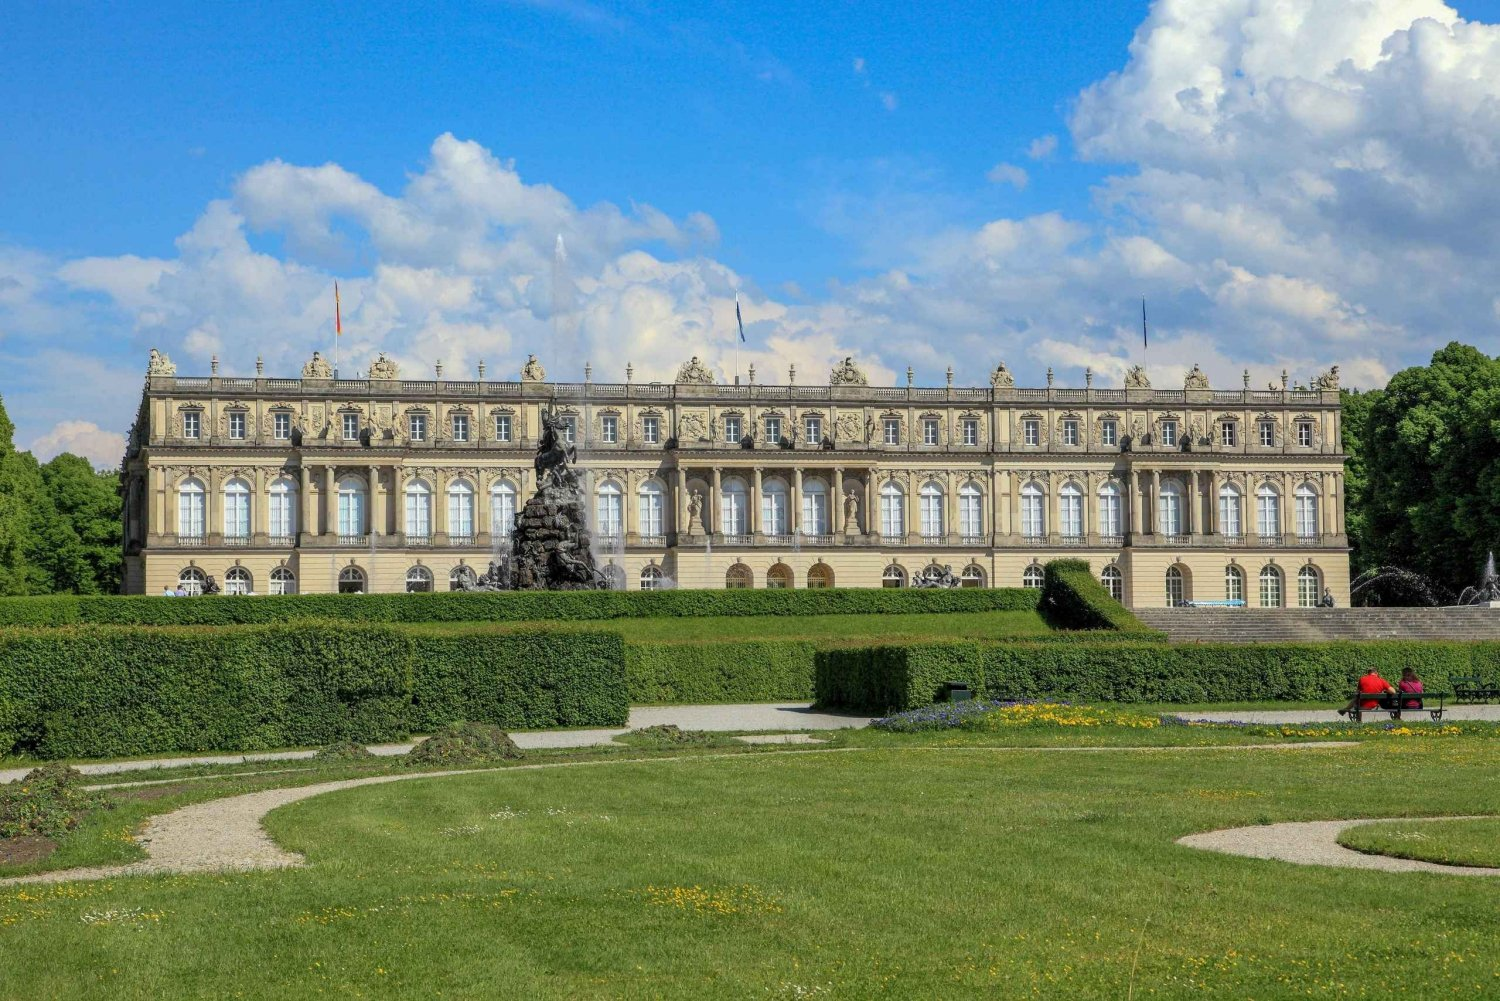 Day Tour to Herrenchiemsee Palace with Skip-The-Line Tickets